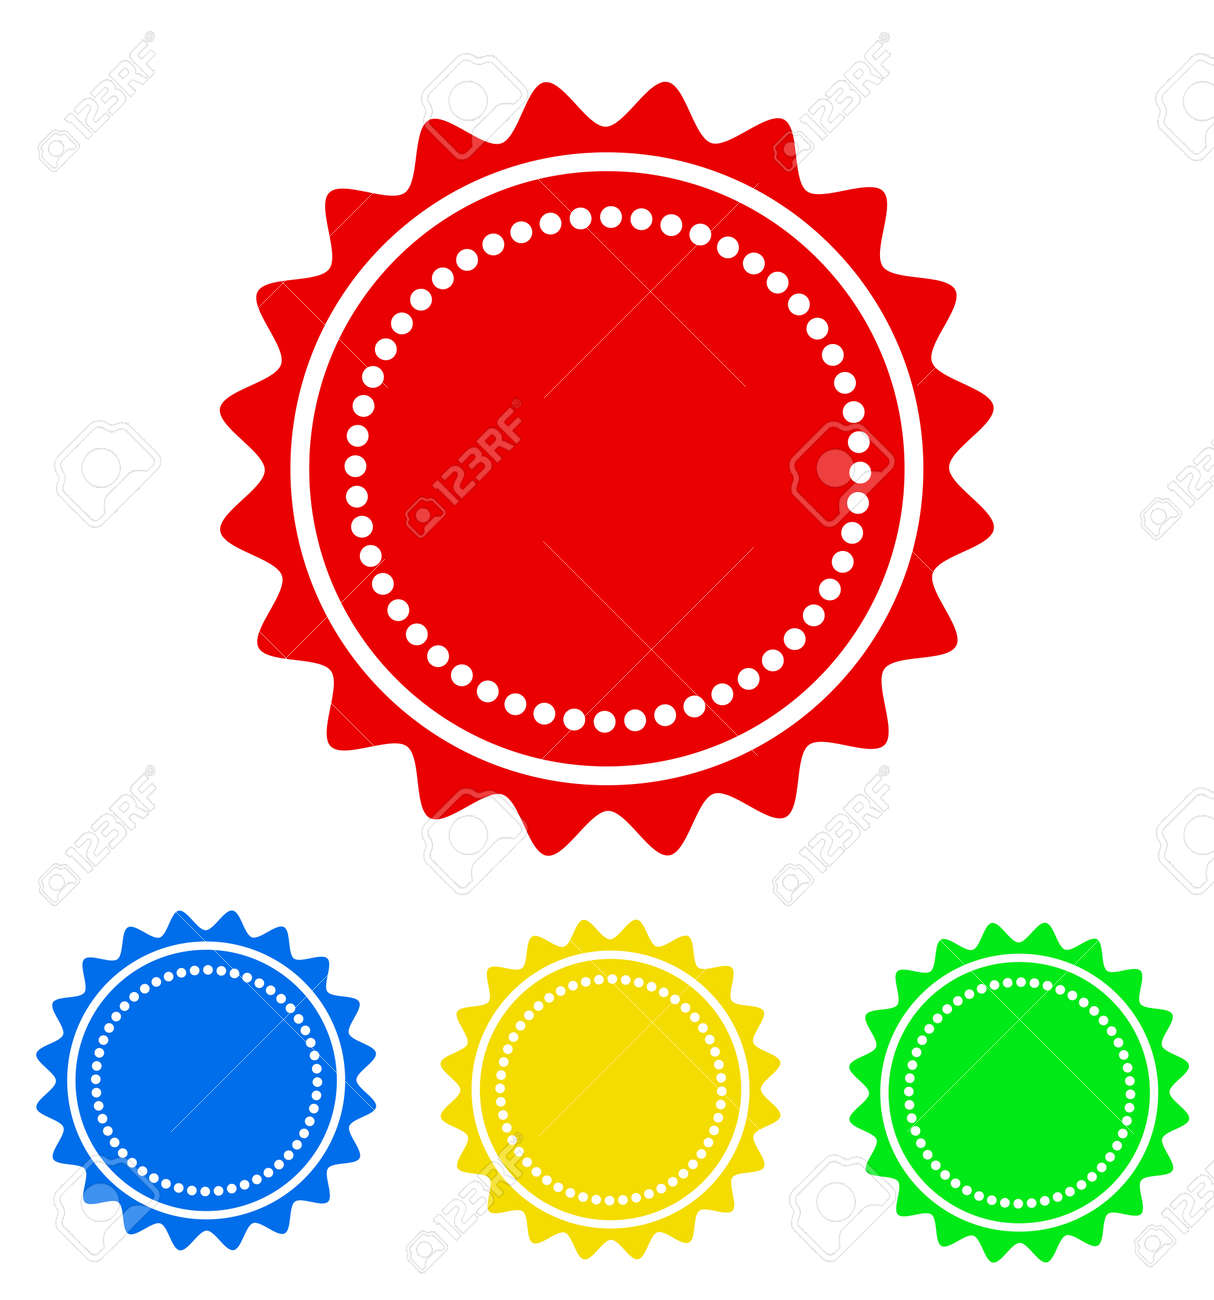 colorful round badge icon for your design stock vector